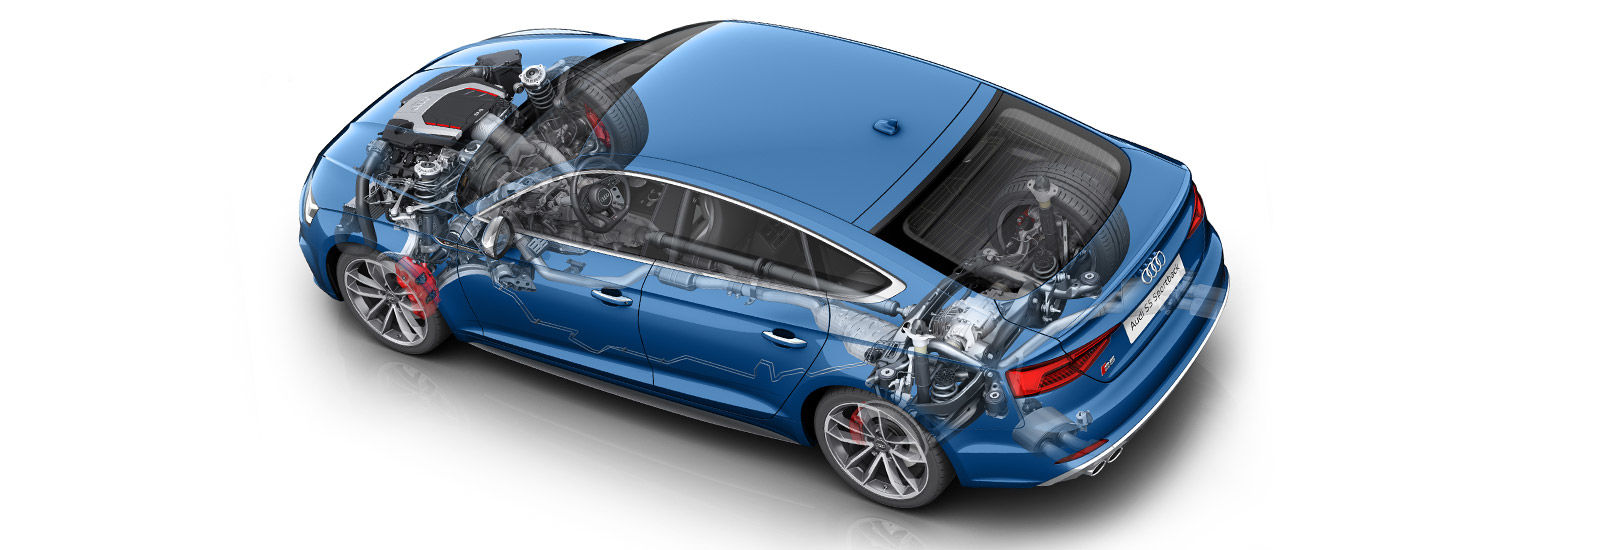 Audis Quattro Allwheel Drive System Explained Carwow - Audi awd cars